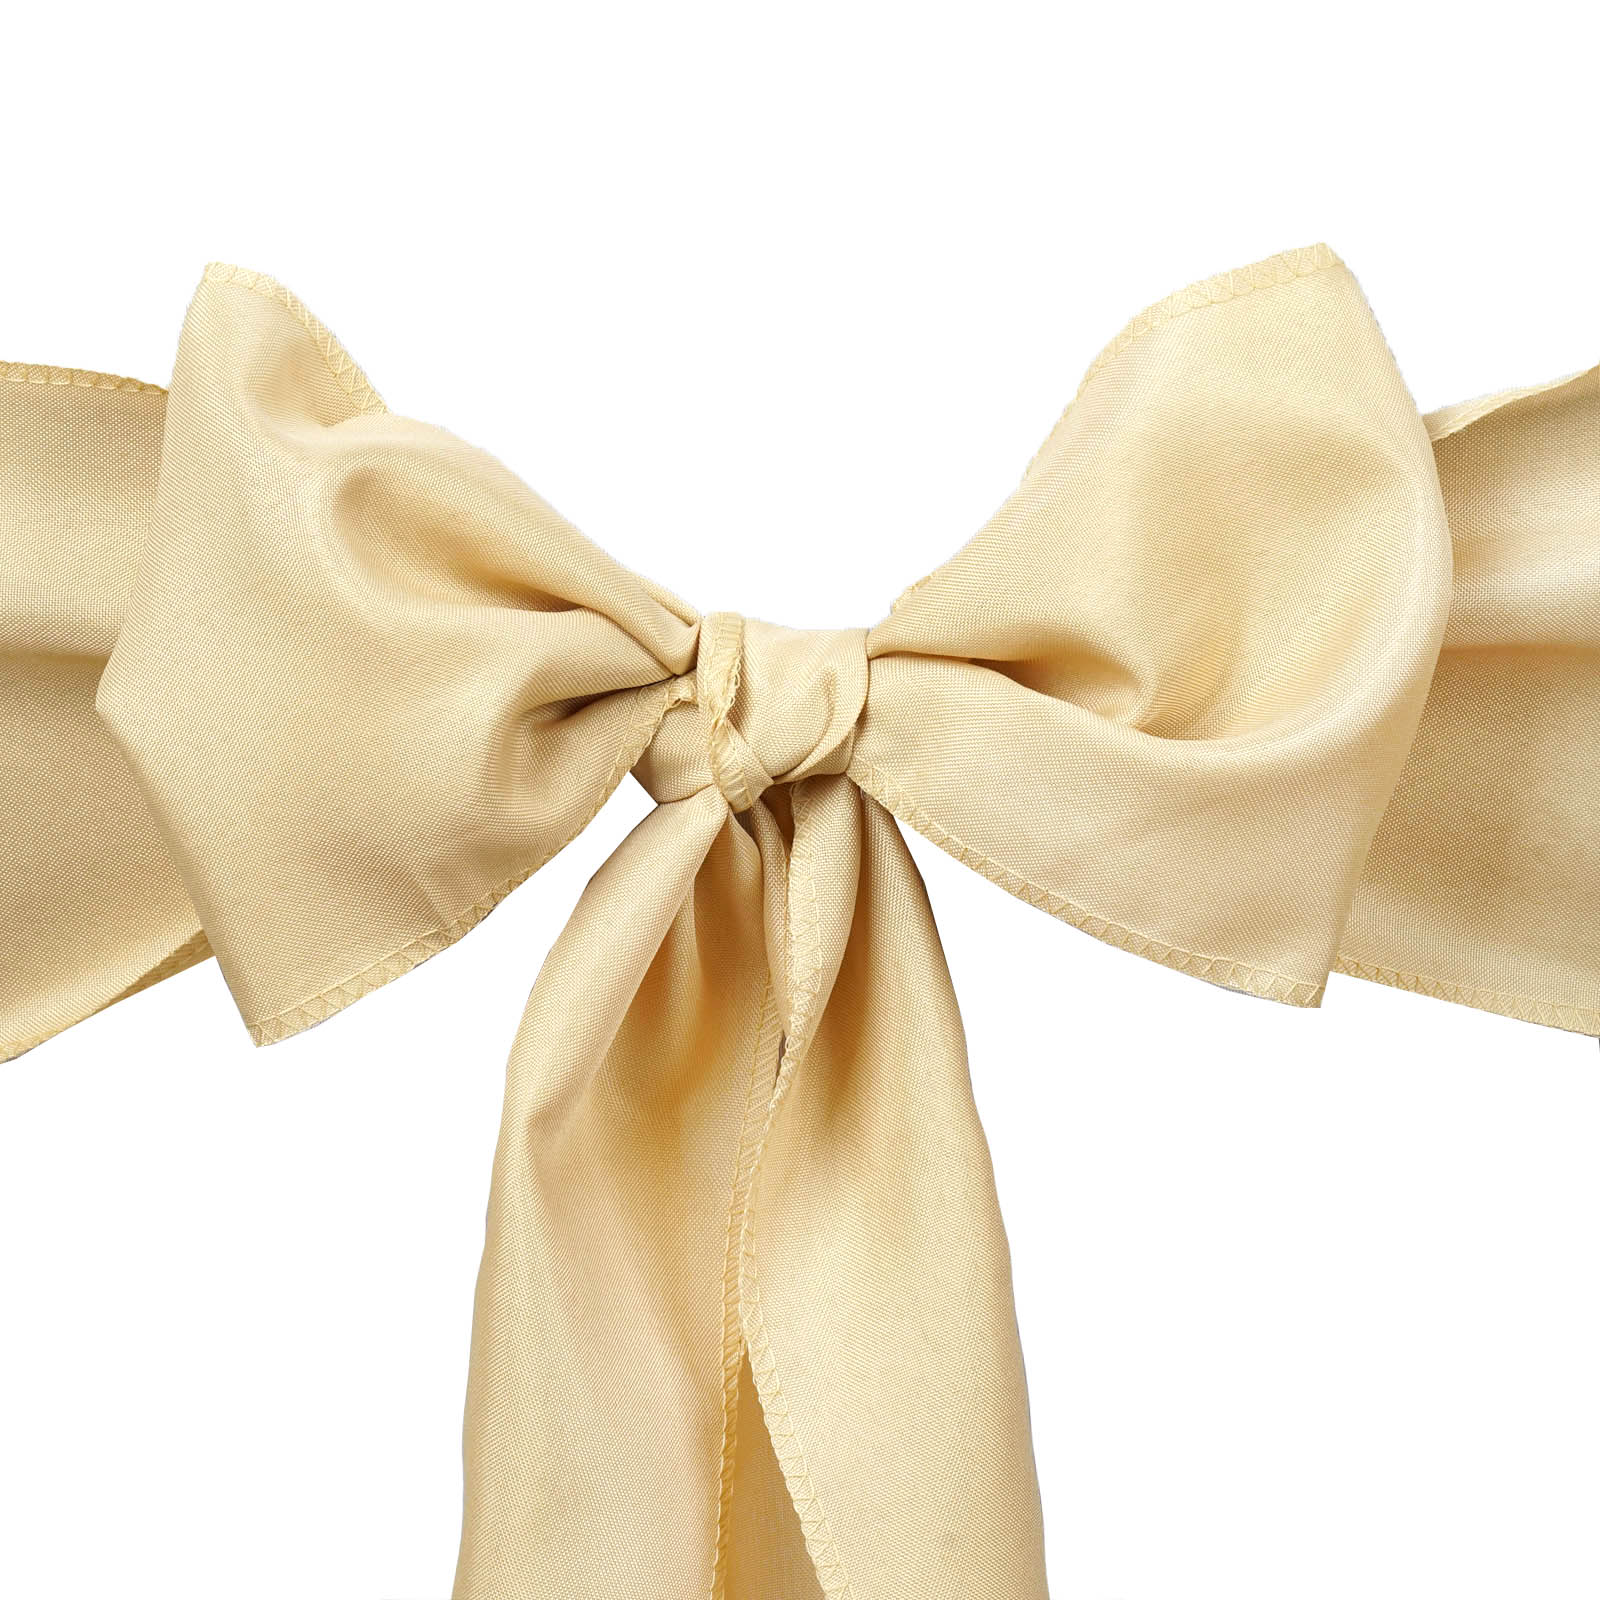 25 Polyester CHAIR SASHES Ties Bows Wedding Party Ceremony